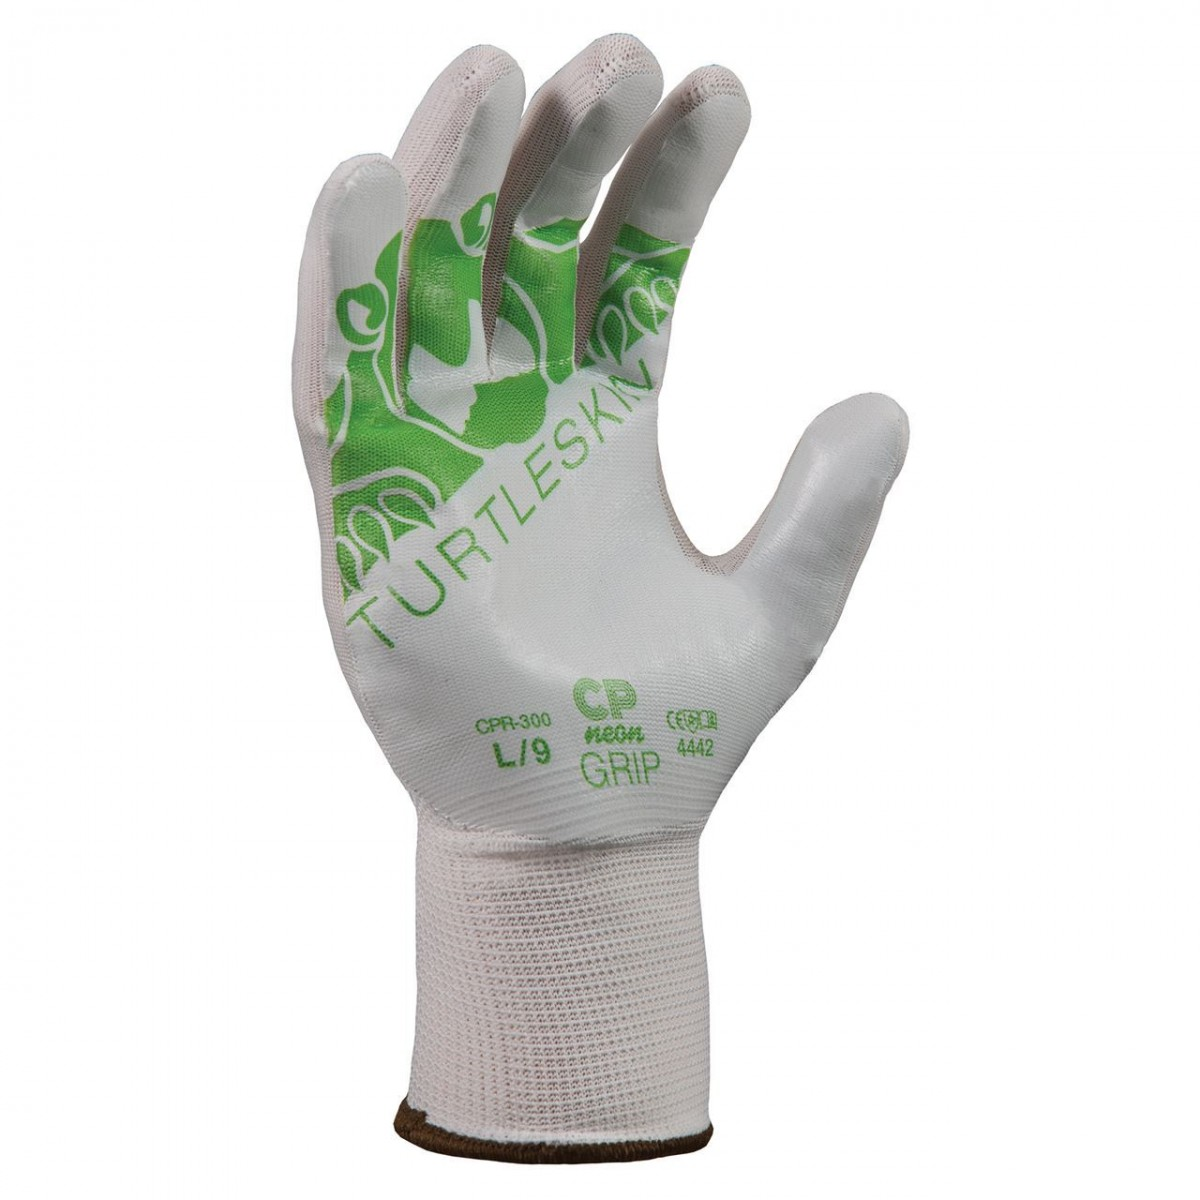 Turtleskin® CP Neon Grip 550 Puncture-Resistant Work Gloves